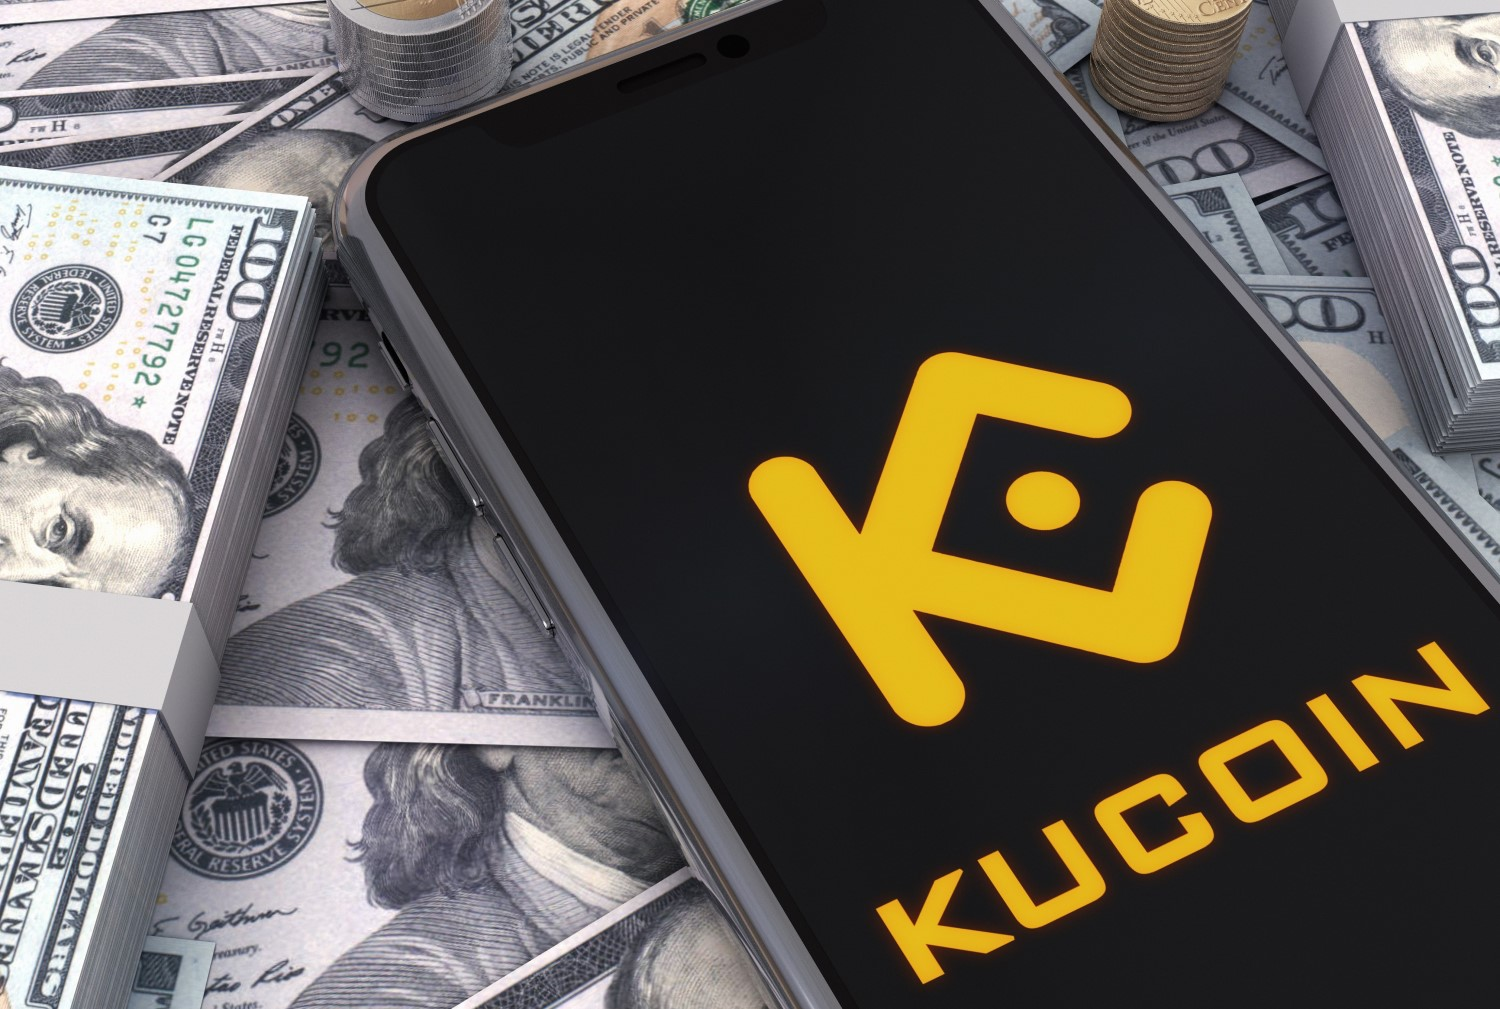 KuCoin Exchange Traders Can Now Self-Custody Their Crypto Assets